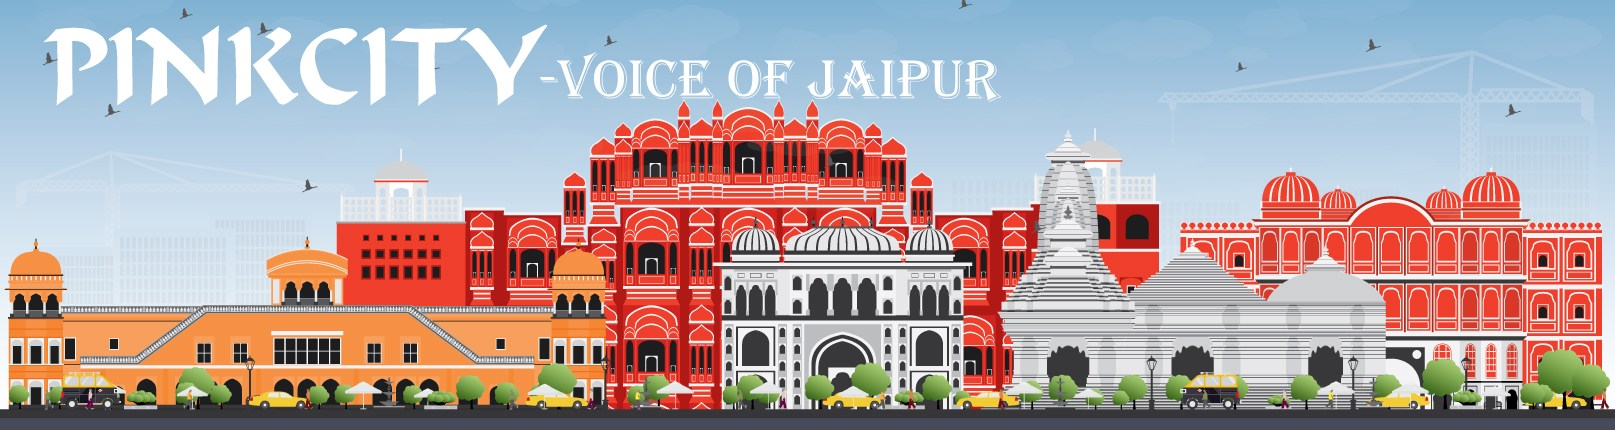 Pinkcity - Voice of Jaipur